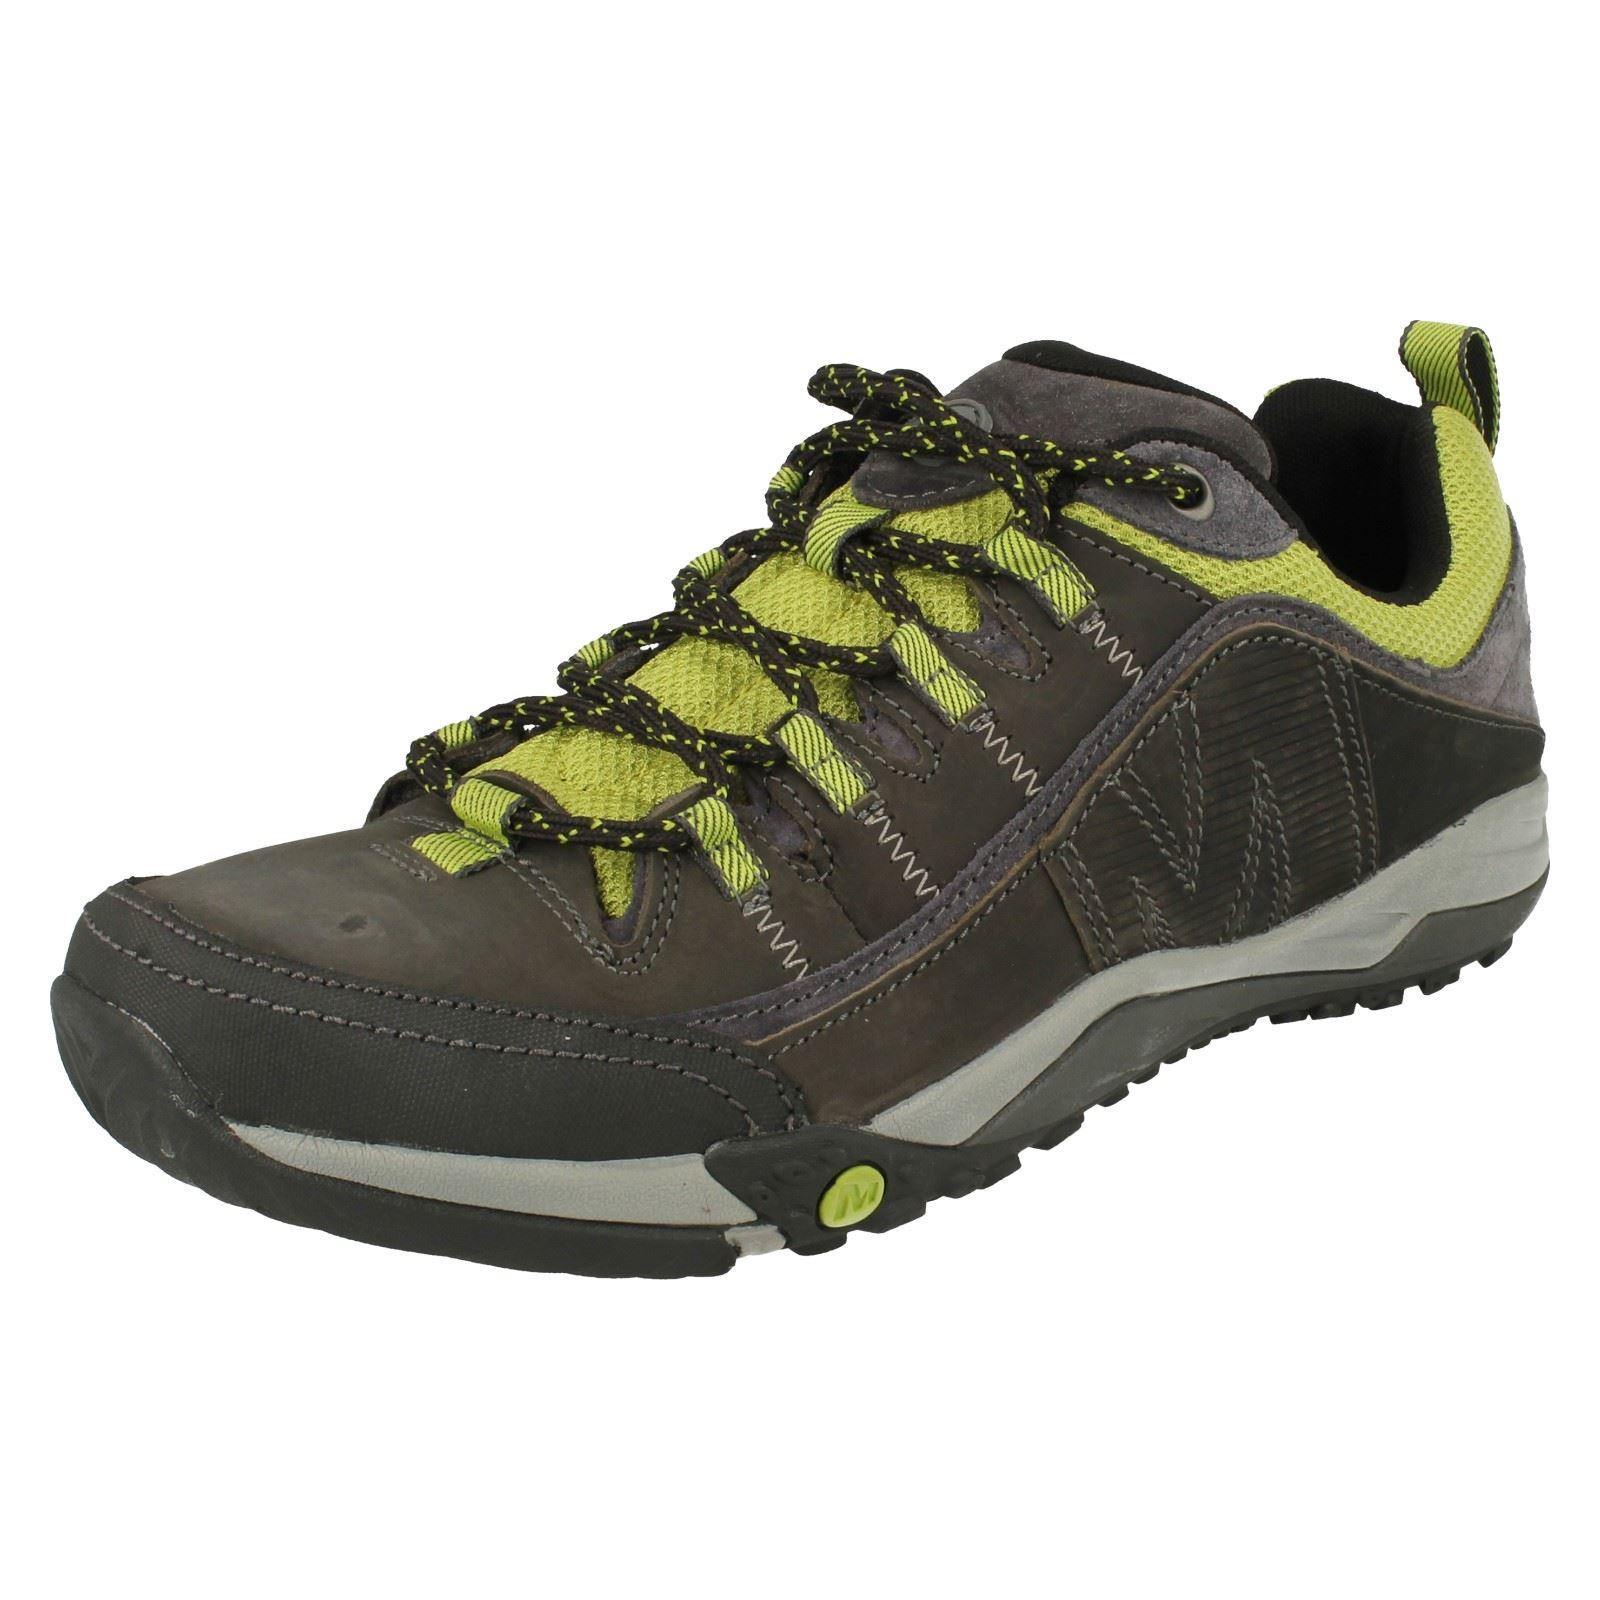 Mens Merrell  Helxer Distors Castle Rock Leather Walking  Hiking scarpe  consegna lampo